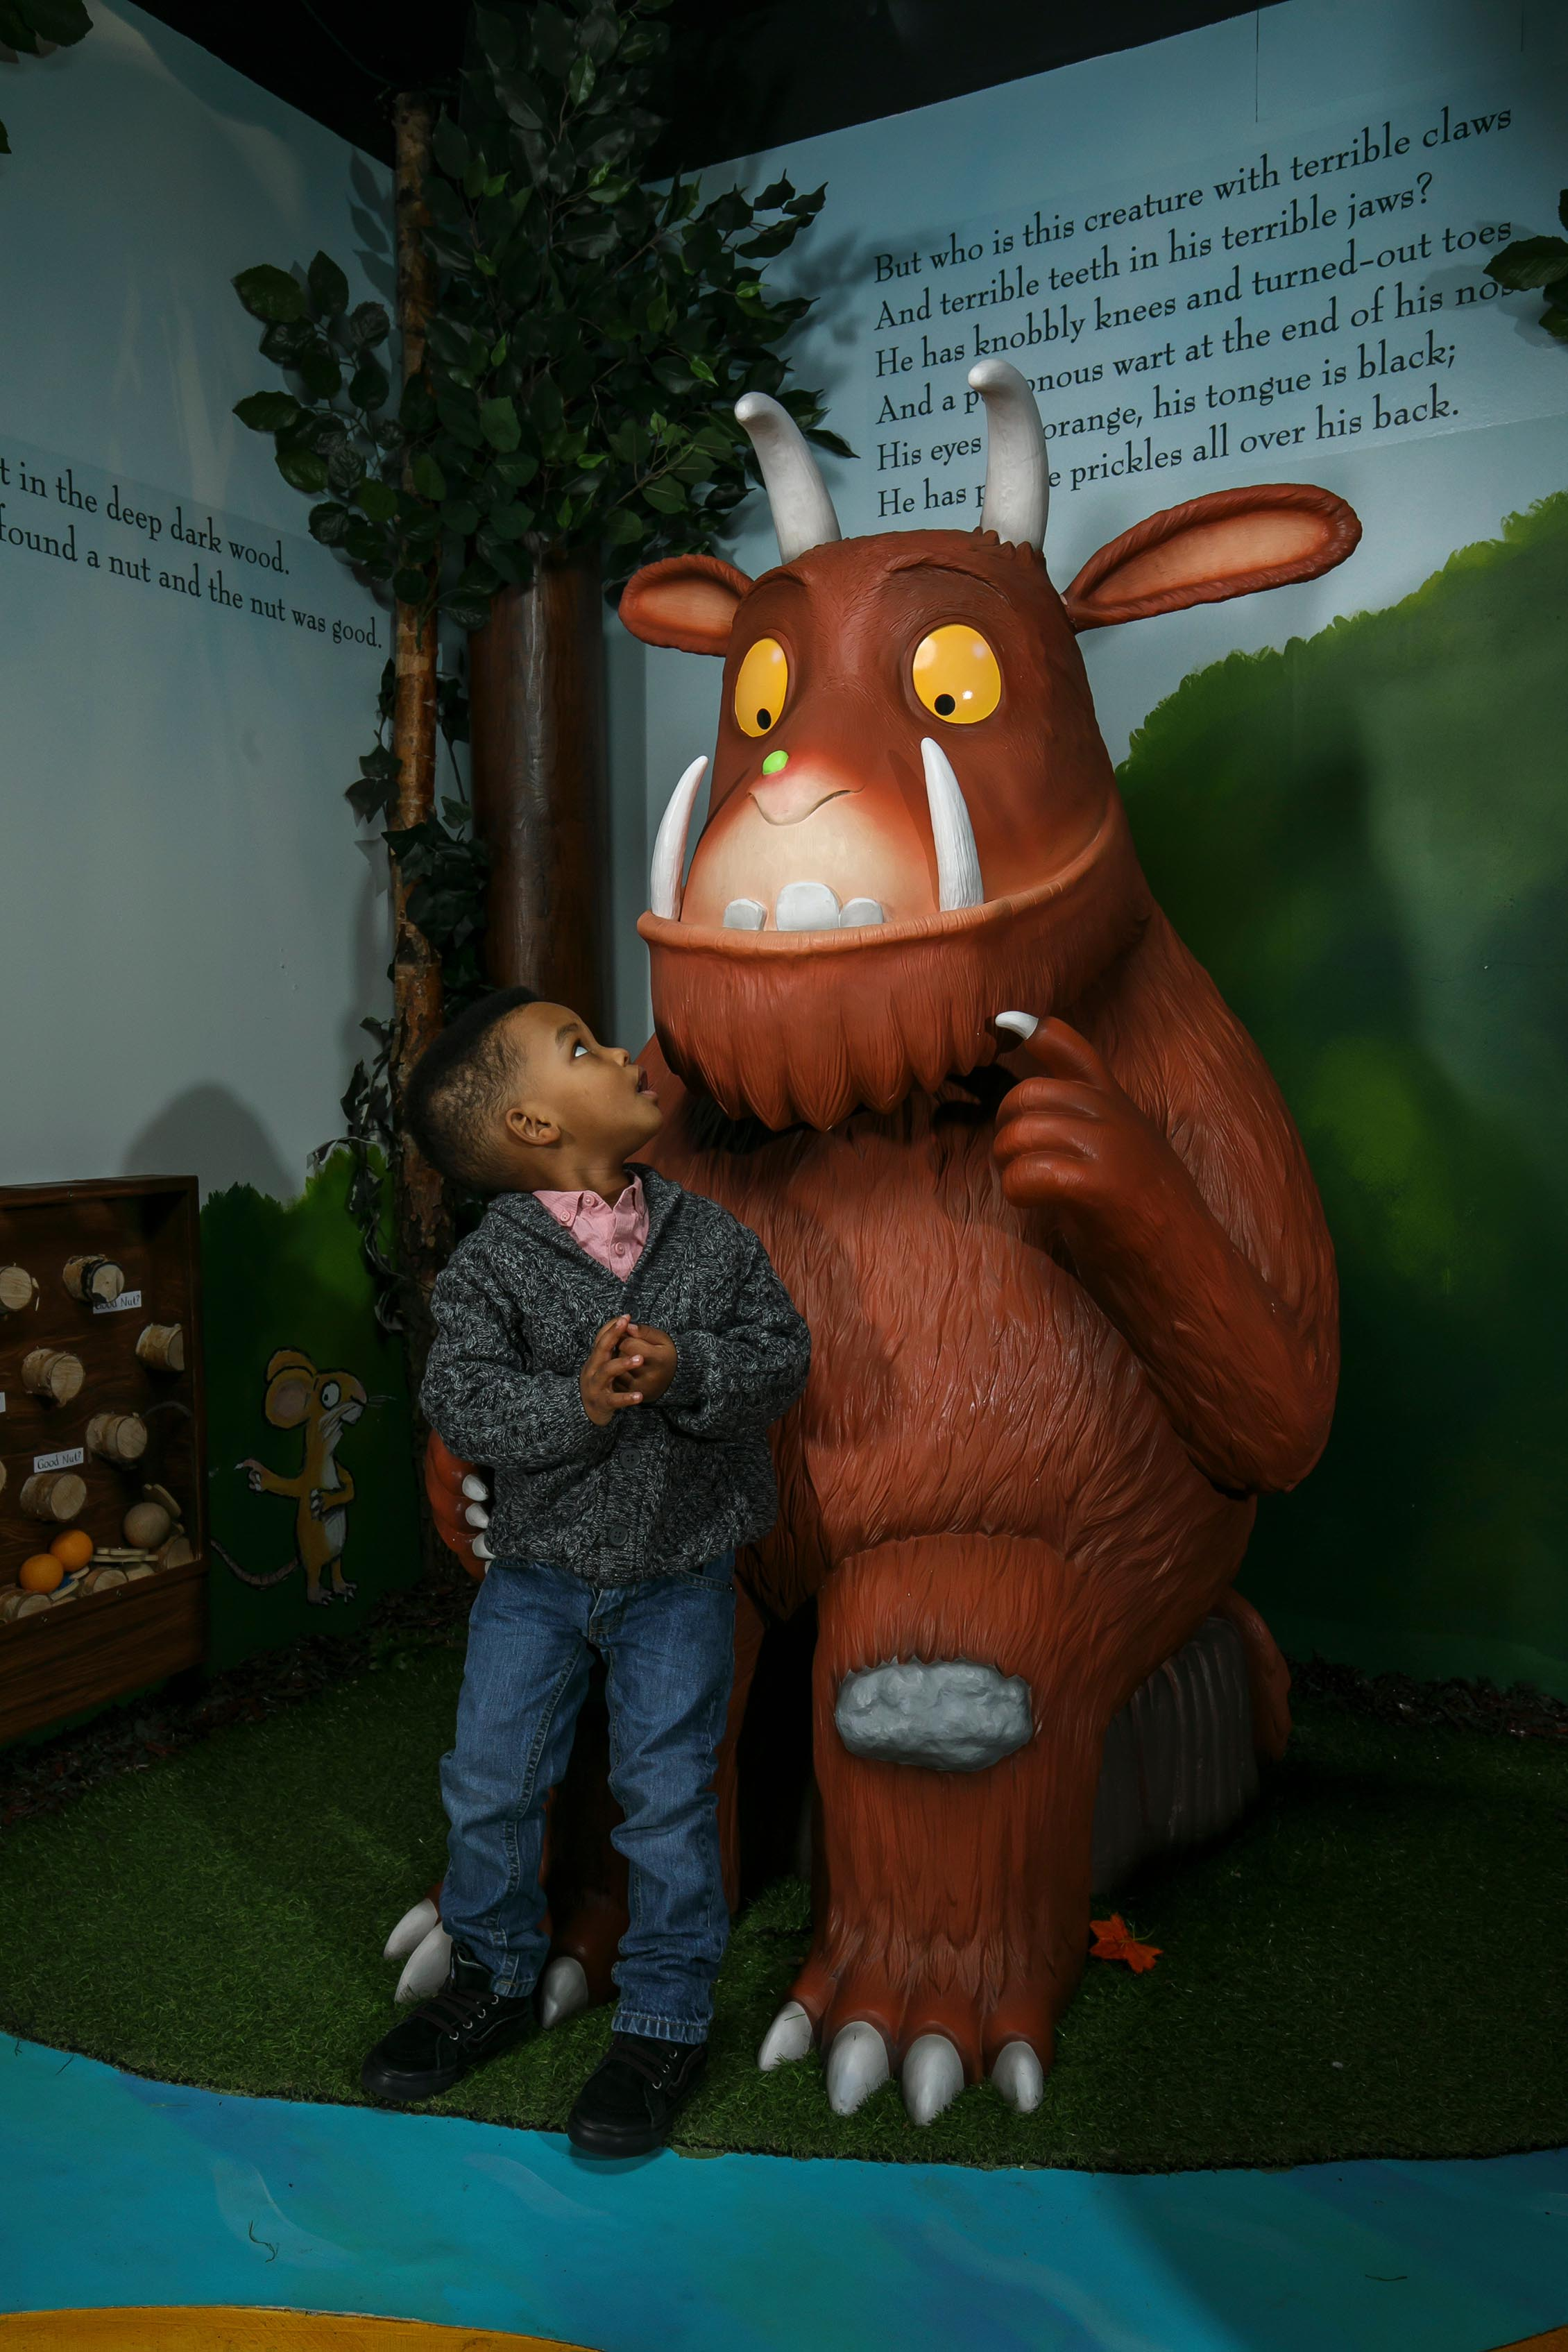 056_DISC_GRUFFALO_CVR_5th_DEC_ABK